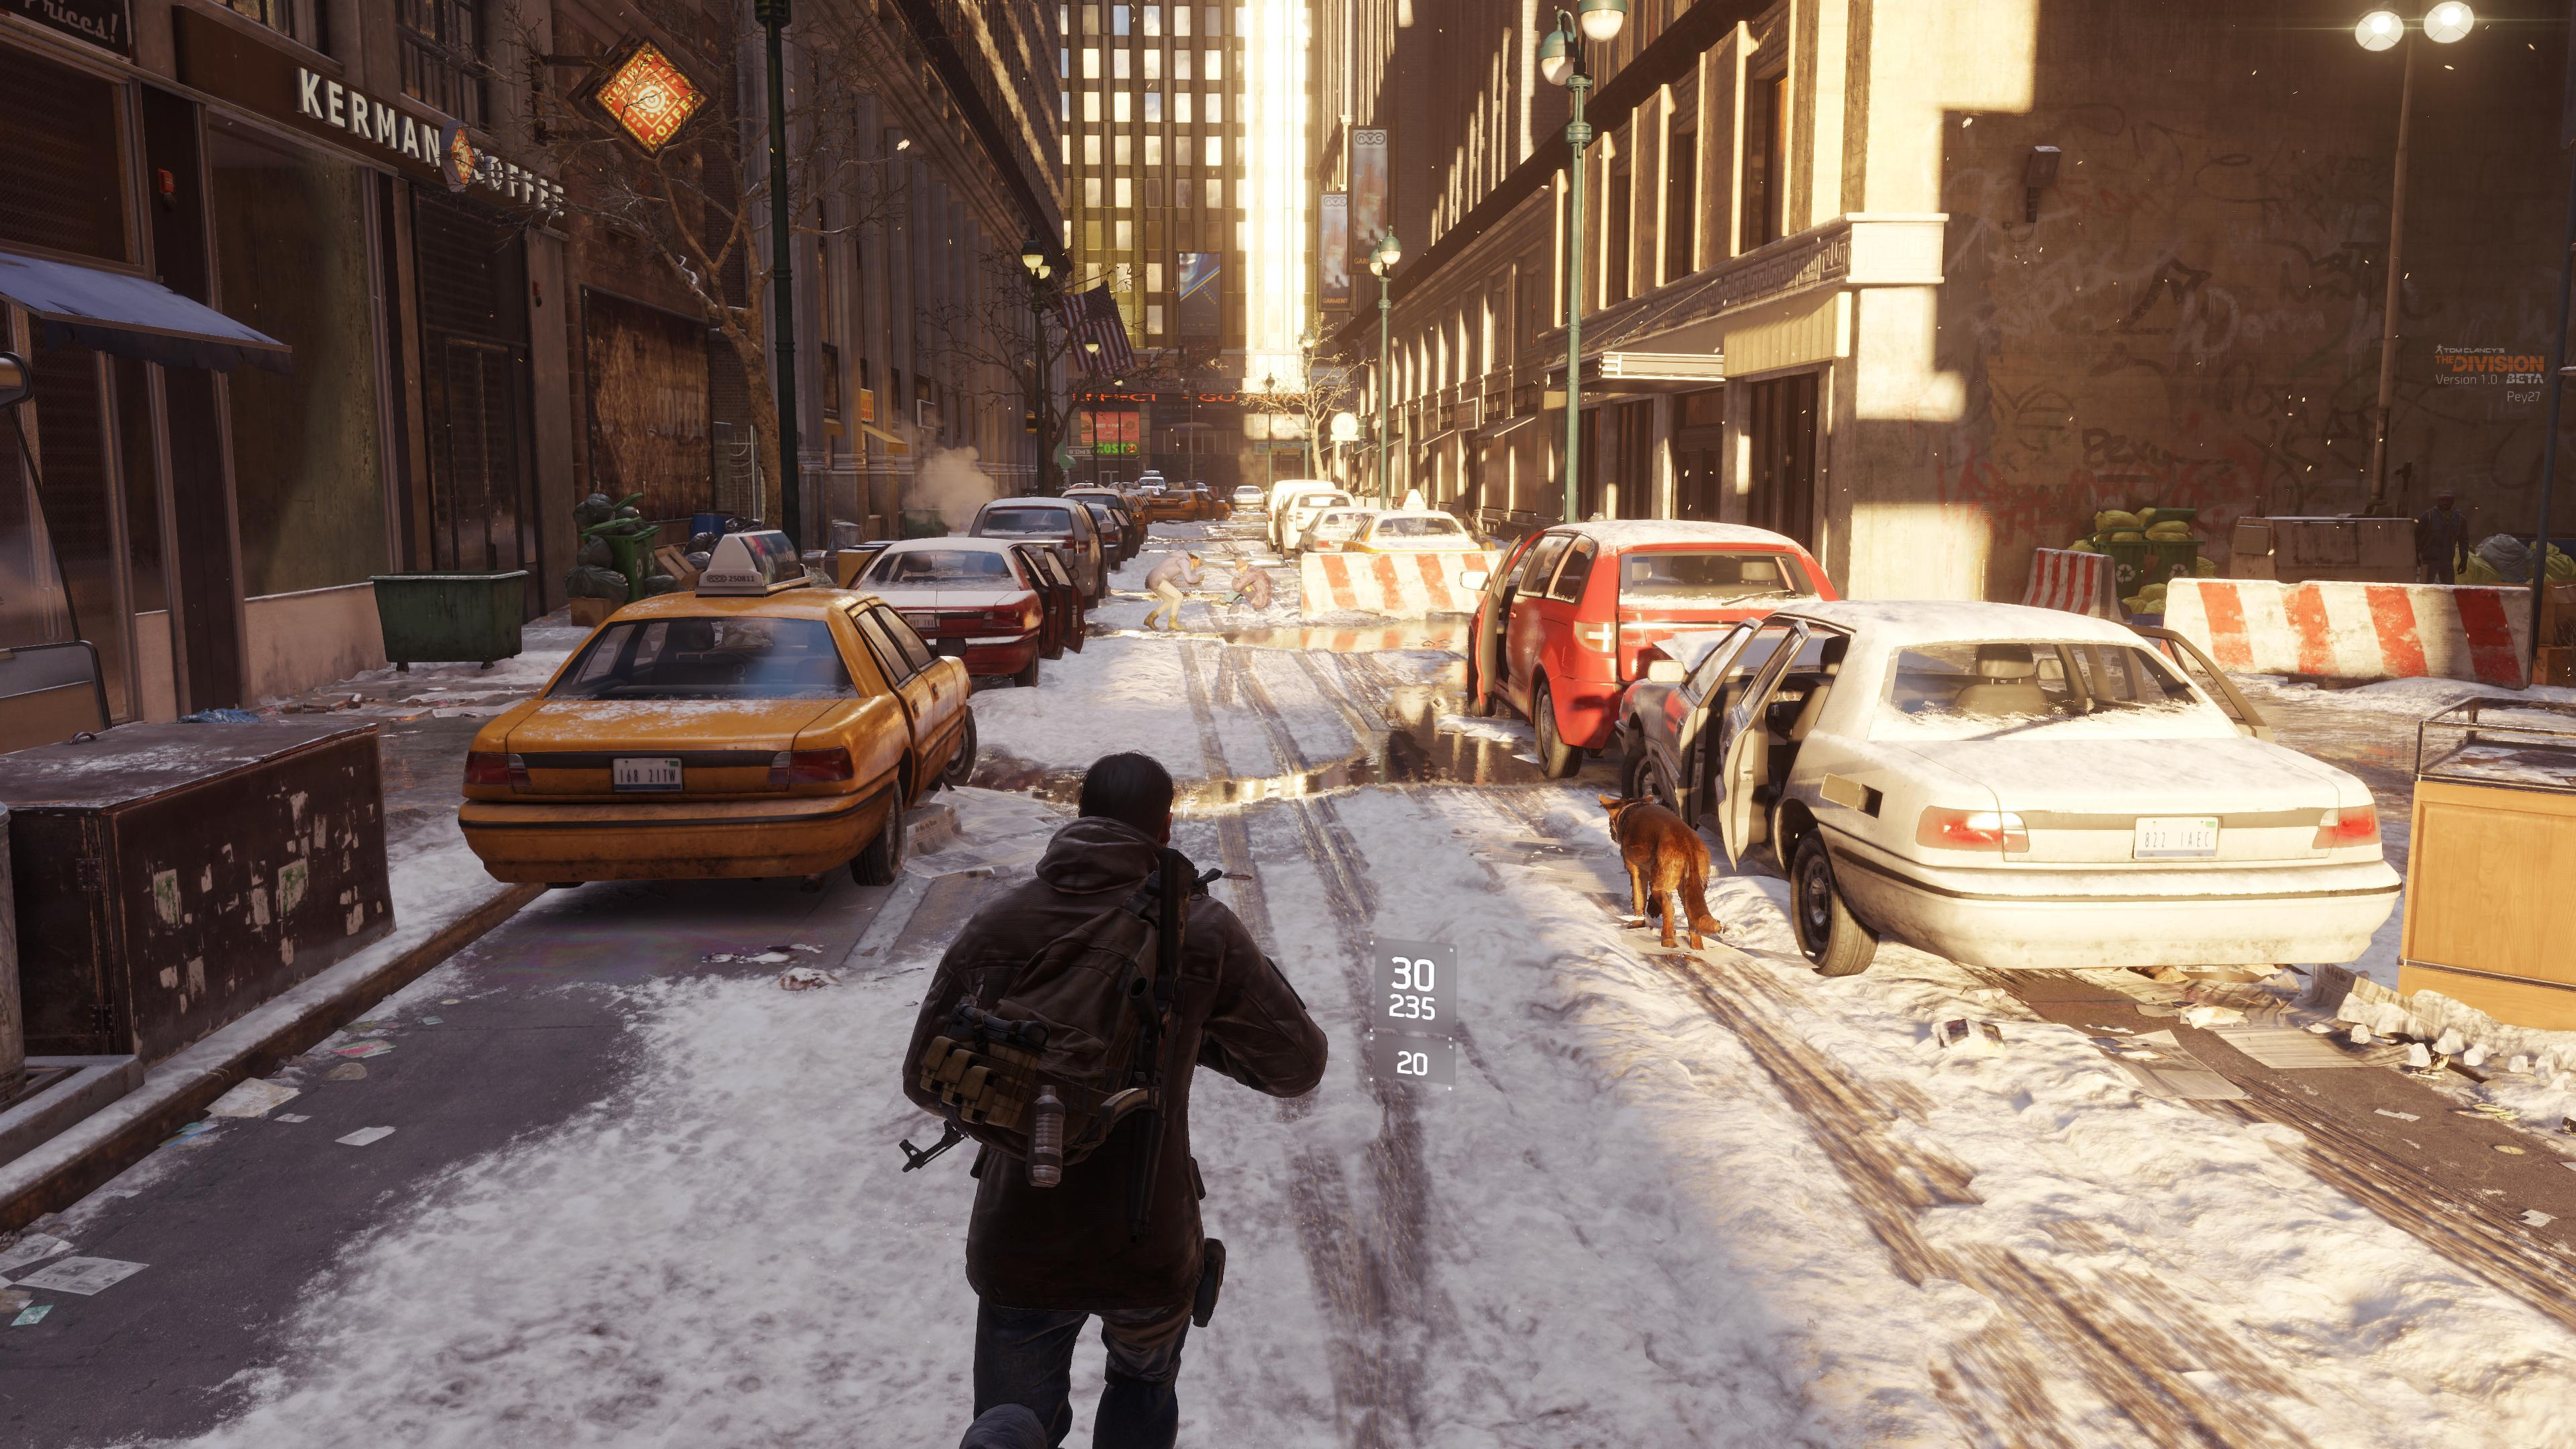 The Division In-Game Benchmark Test @4K Resolution - Pretty